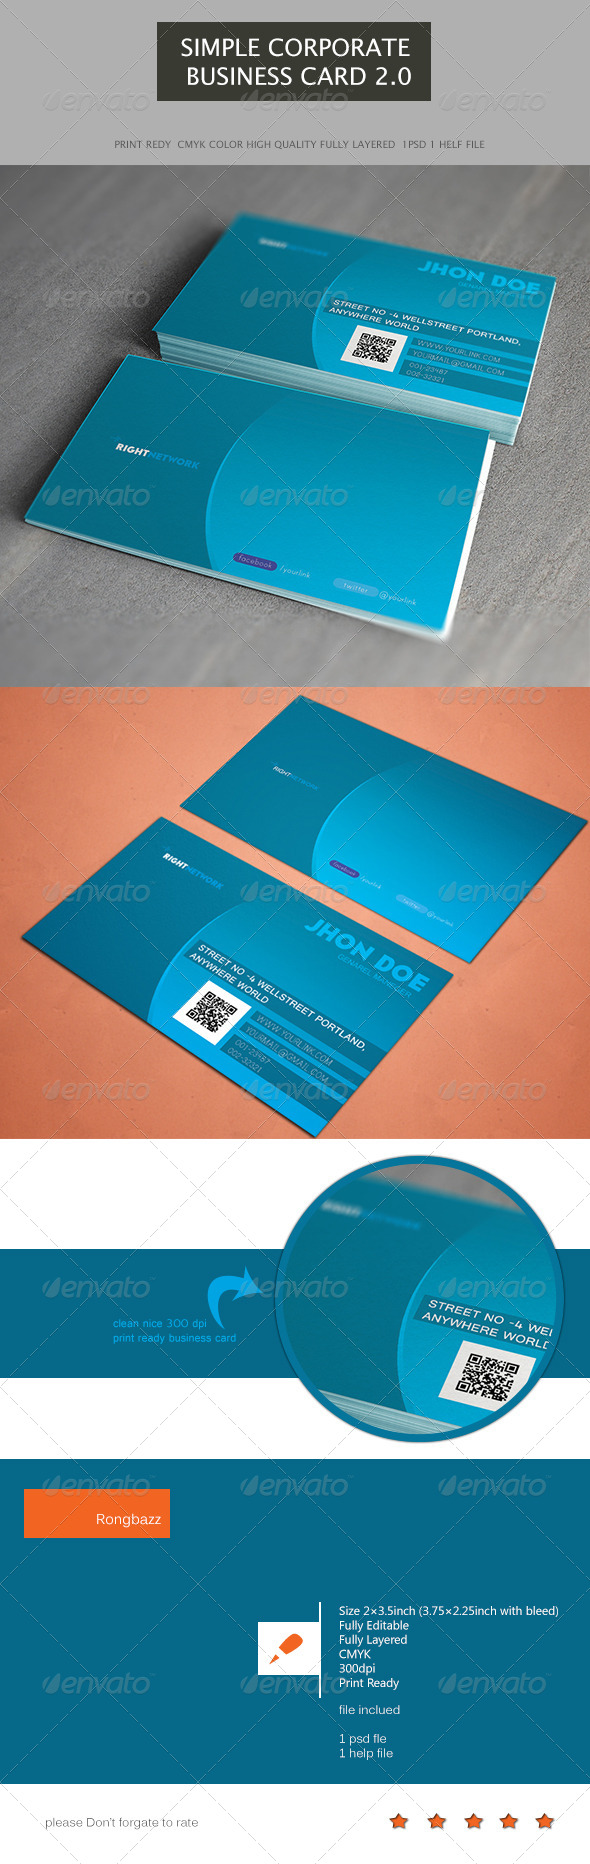 GraphicRiver Simple Corporate Business Card 2.0 6430659